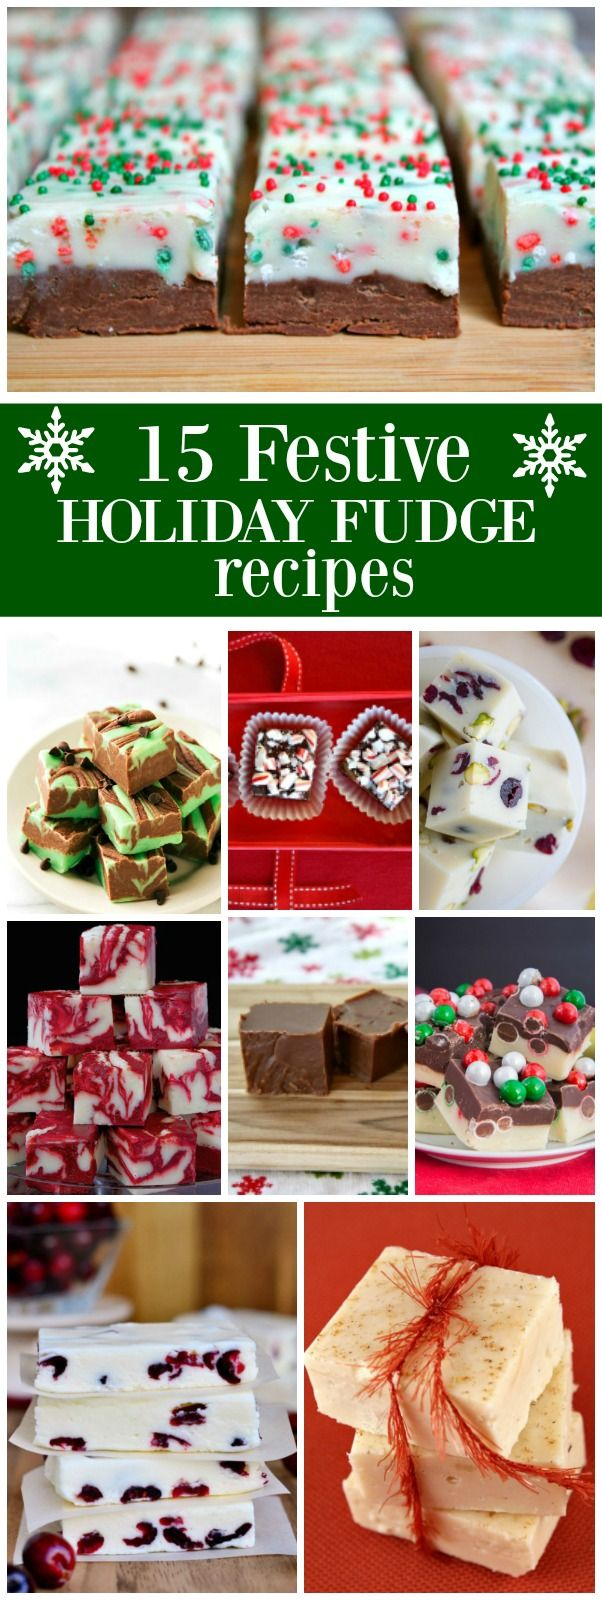 Amp occasions gt christmas alert occasions gt christmas decorations - 15 Festive Holiday Fudge Recipes Eggnog Fudge Gingerbread Fudge Hot Chocolate Fudge And Best Christmas